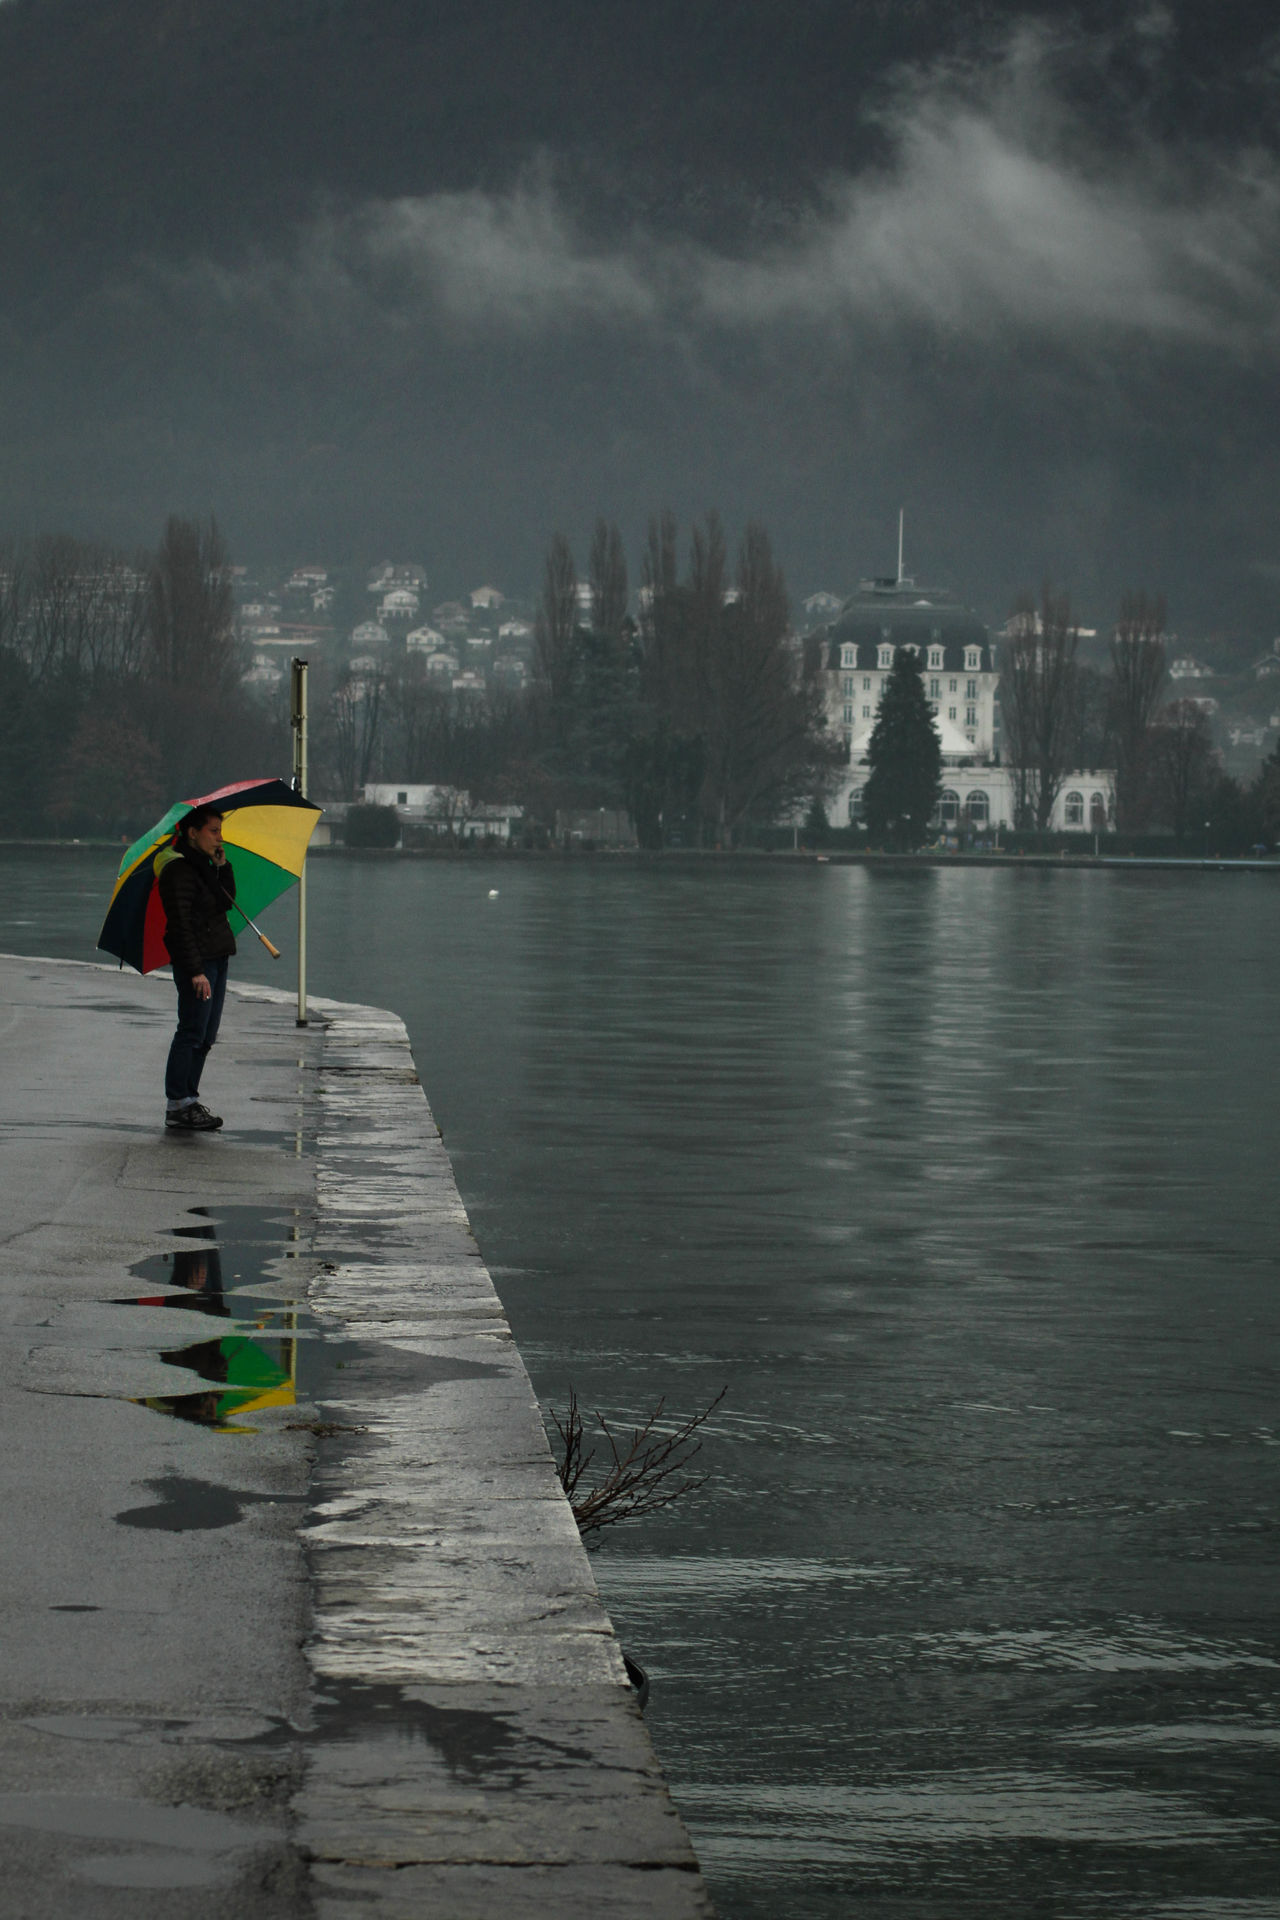 Weather-Worn Adult Annecy Cloud - Sky Outdoors People Quiet Moments Rainy Rainy Days Reflection Standing Tranquility Umbrella Water Weather Miles Away EyeEmNewHere Candid Candid Photography France Woman Serene Outdoors Overcast Tranquil Scene Rainy Weather Overcast Skies